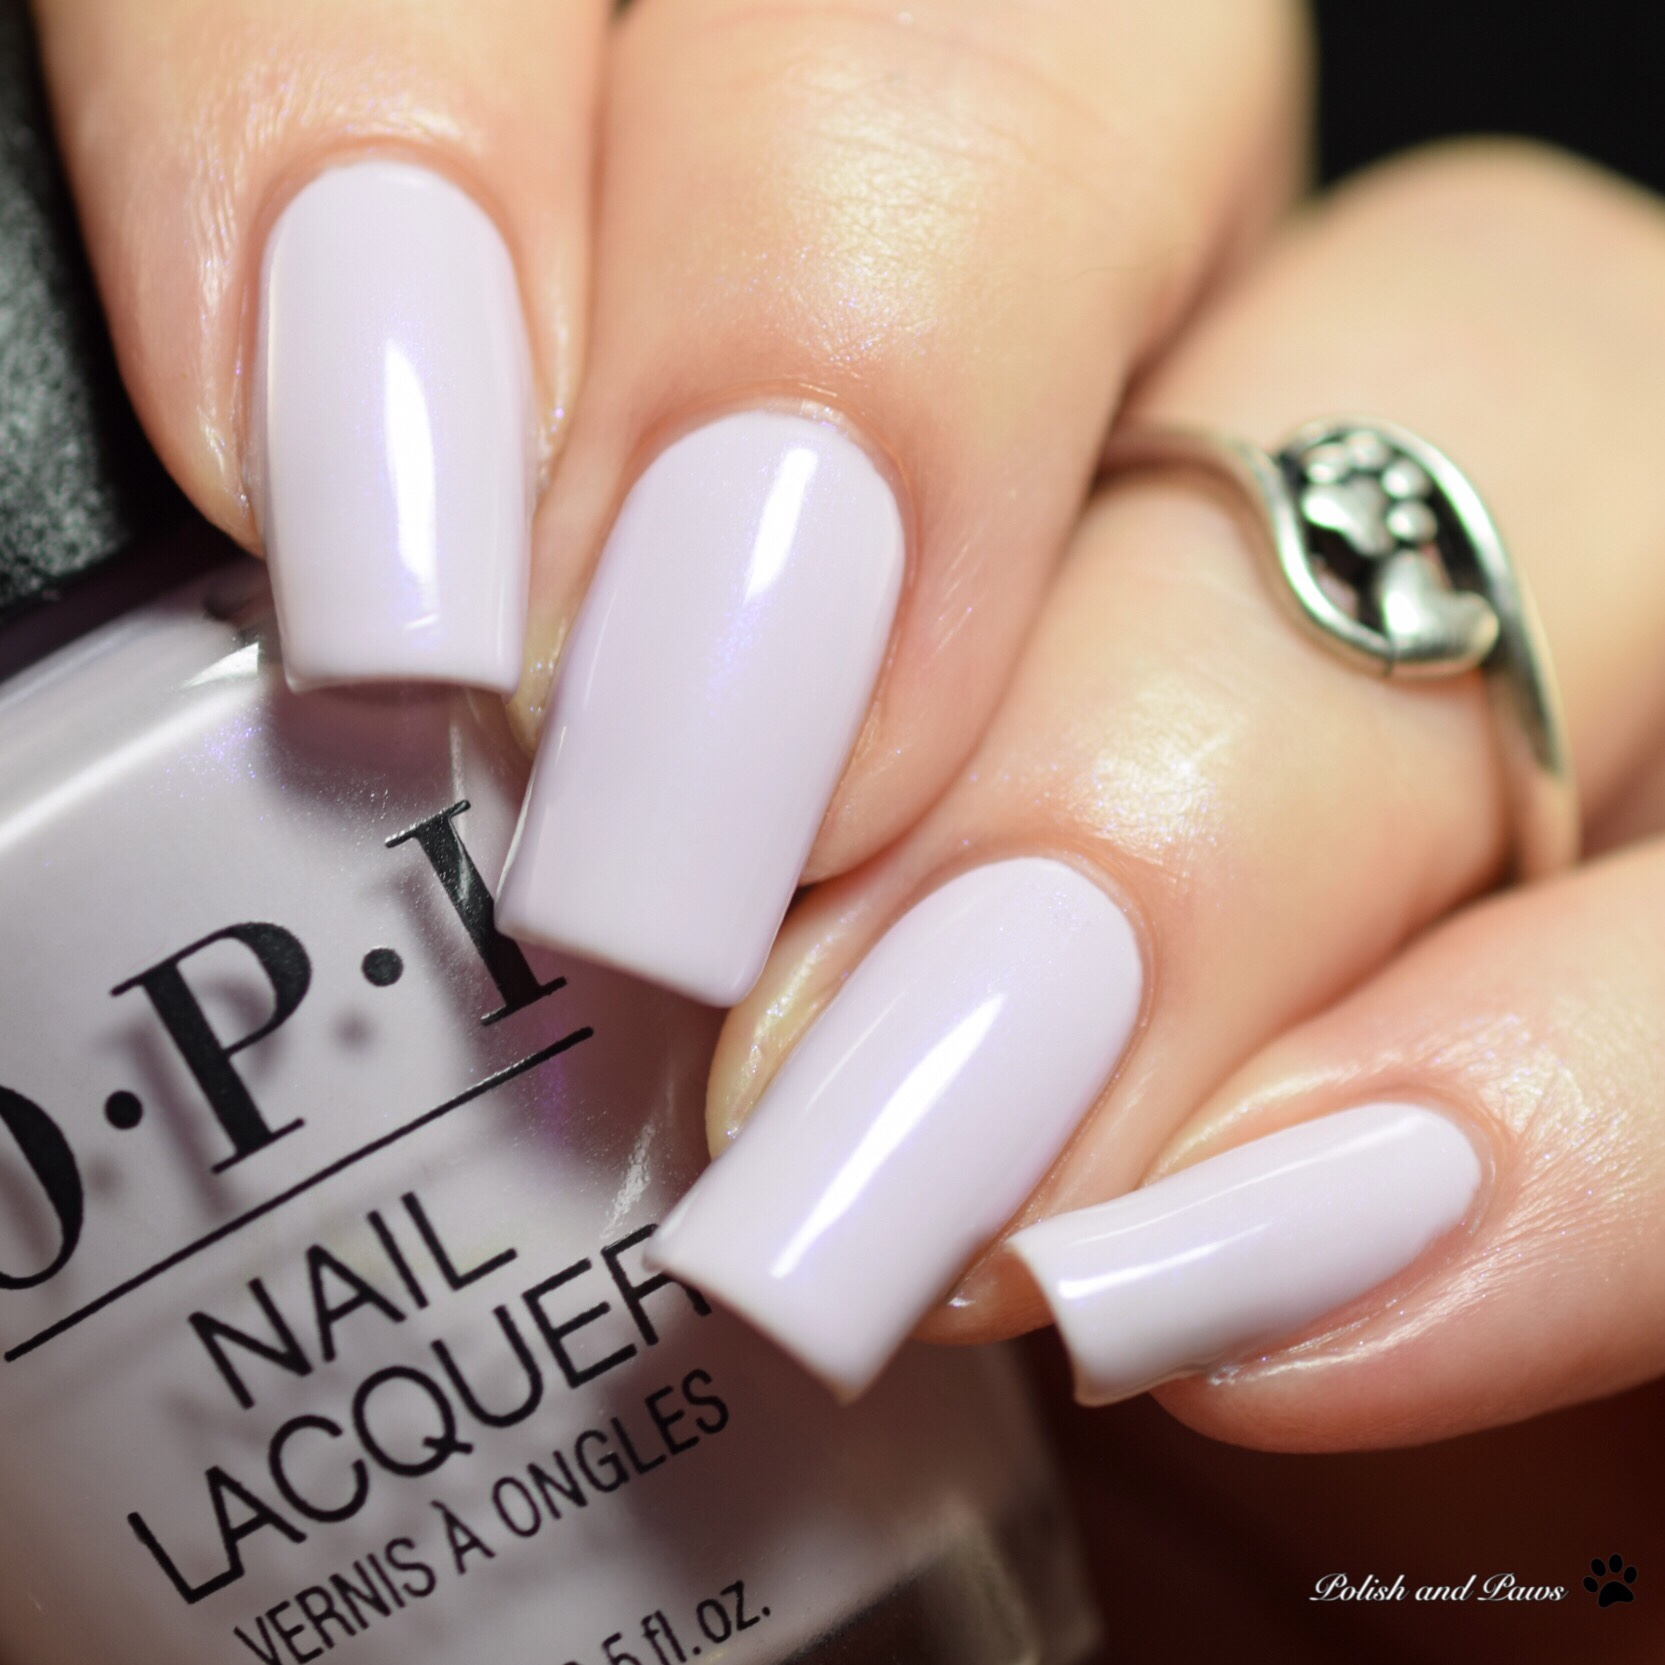 OPI Frenchie Likes to Kiss?